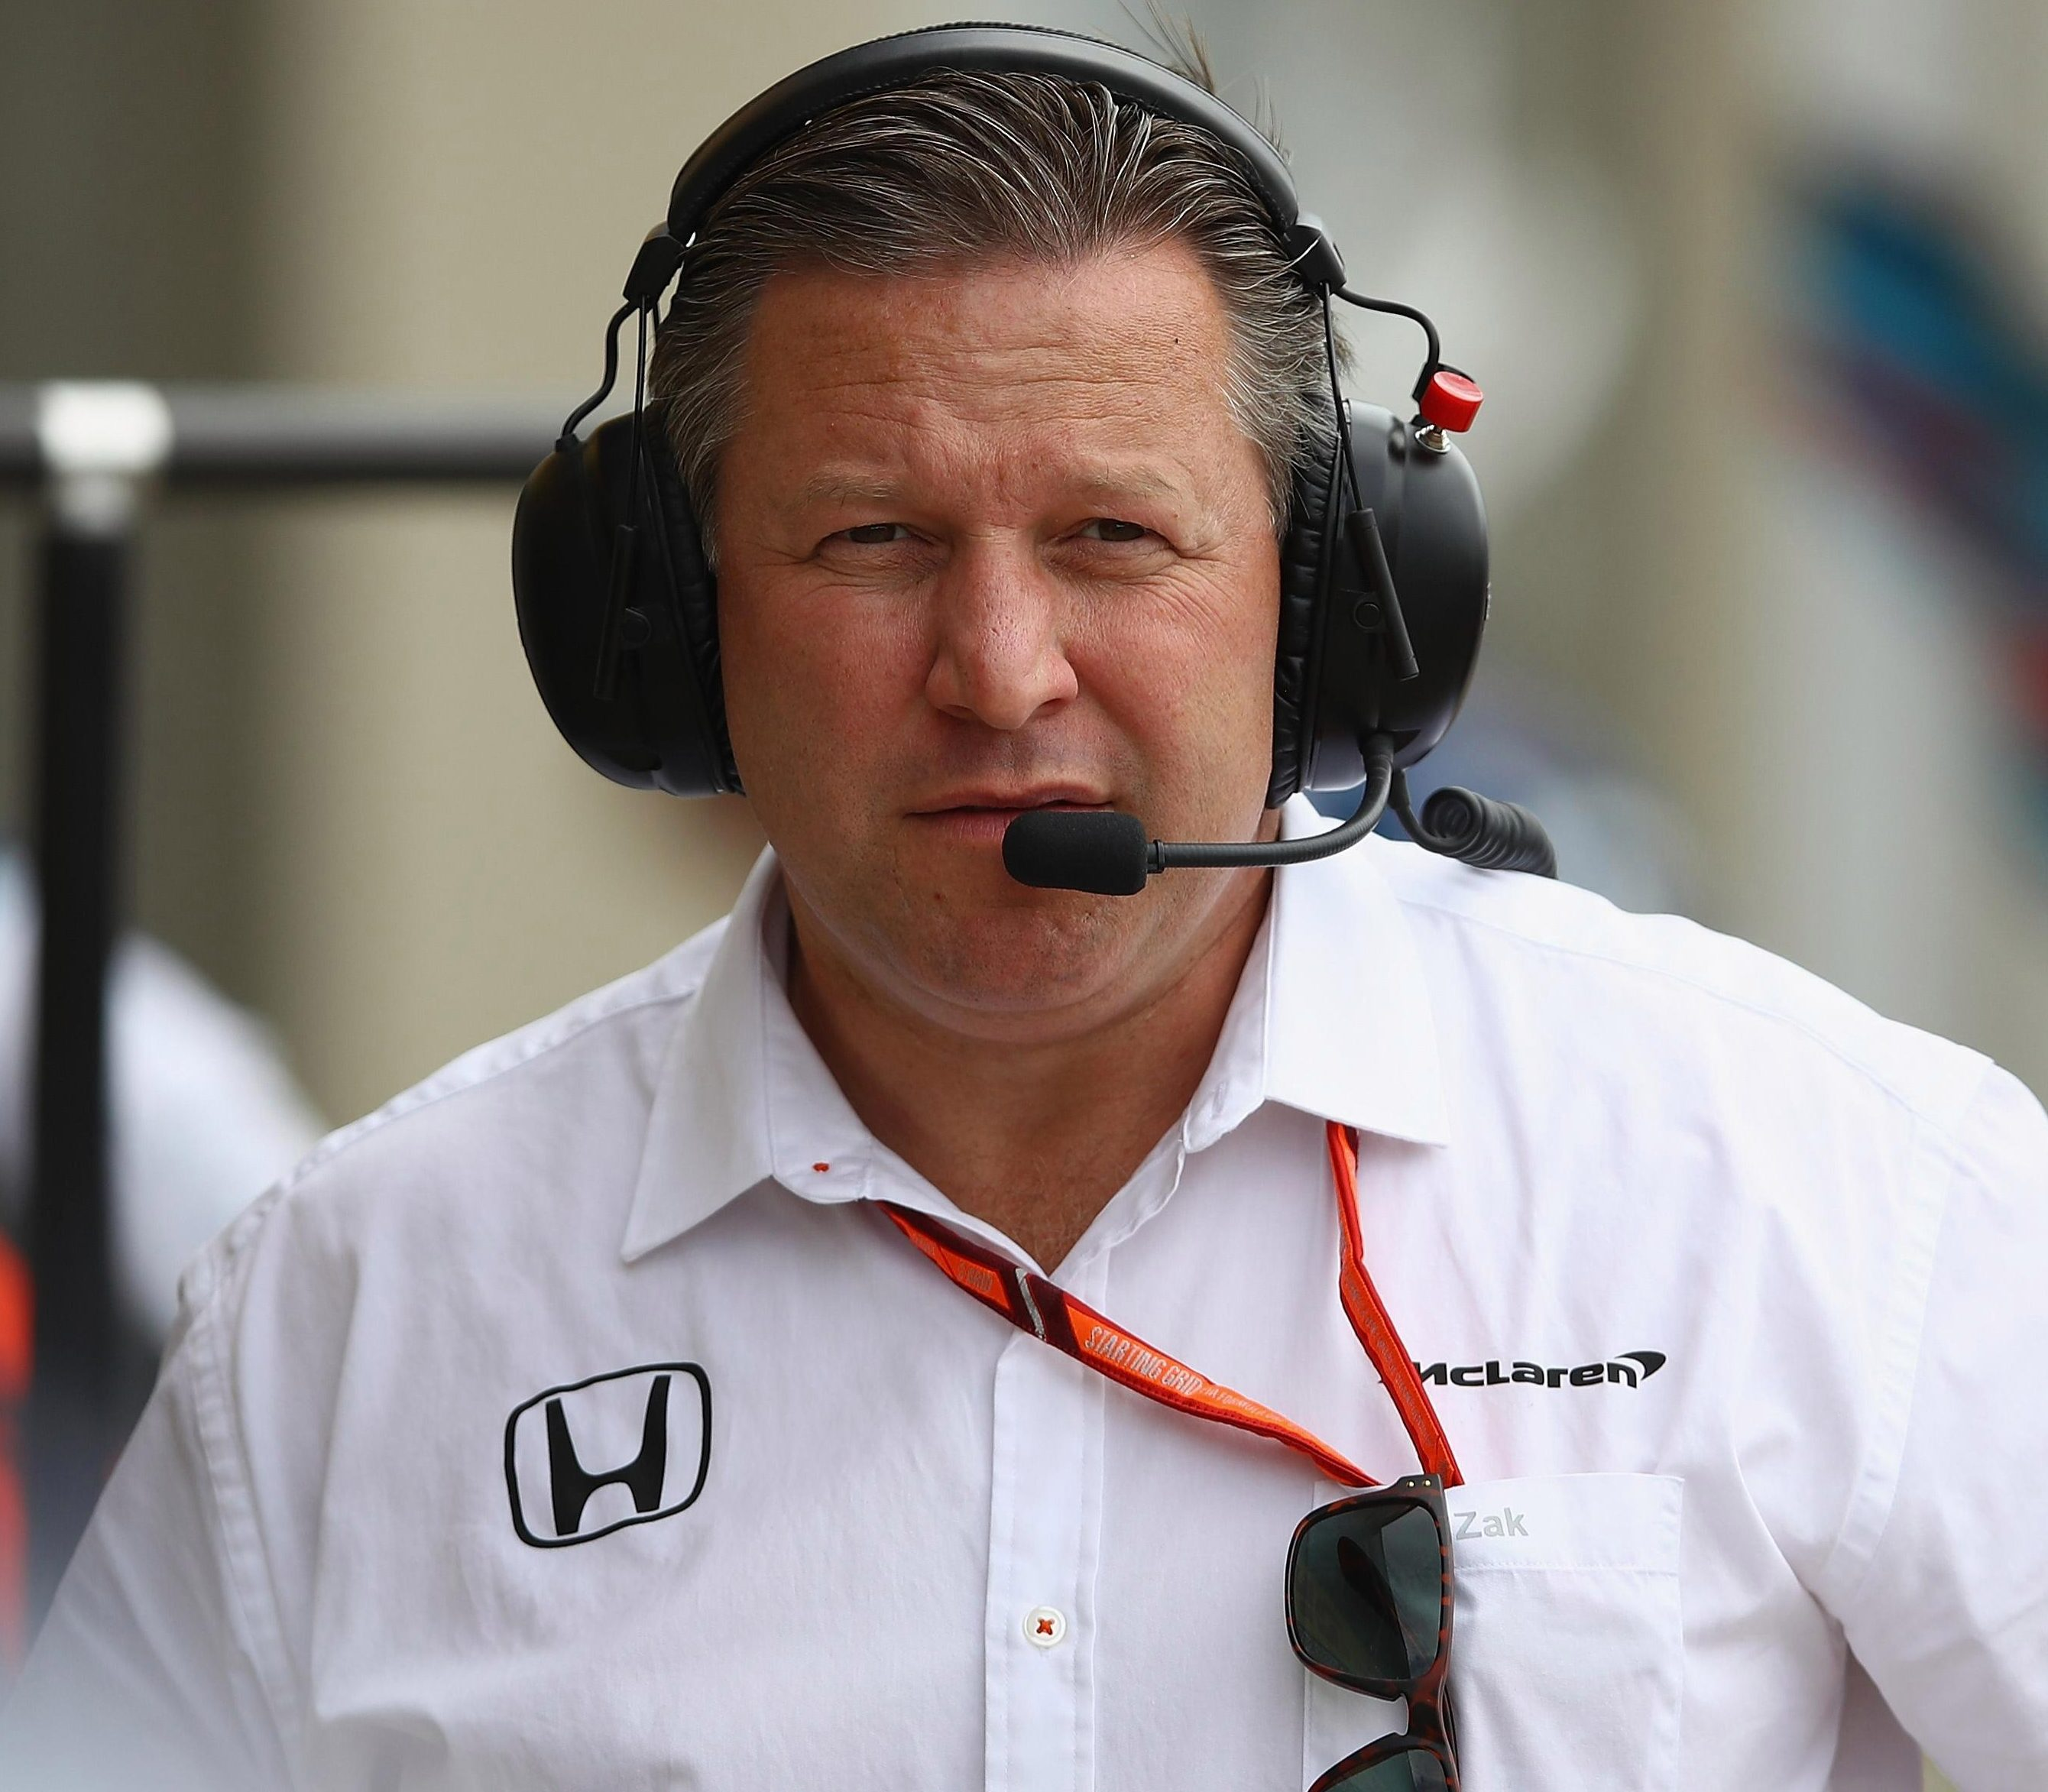 Says McLaren executive director Zak Brown: 'We all know they have a very close alliance with Ferrari. We need to make sure it's not too close'